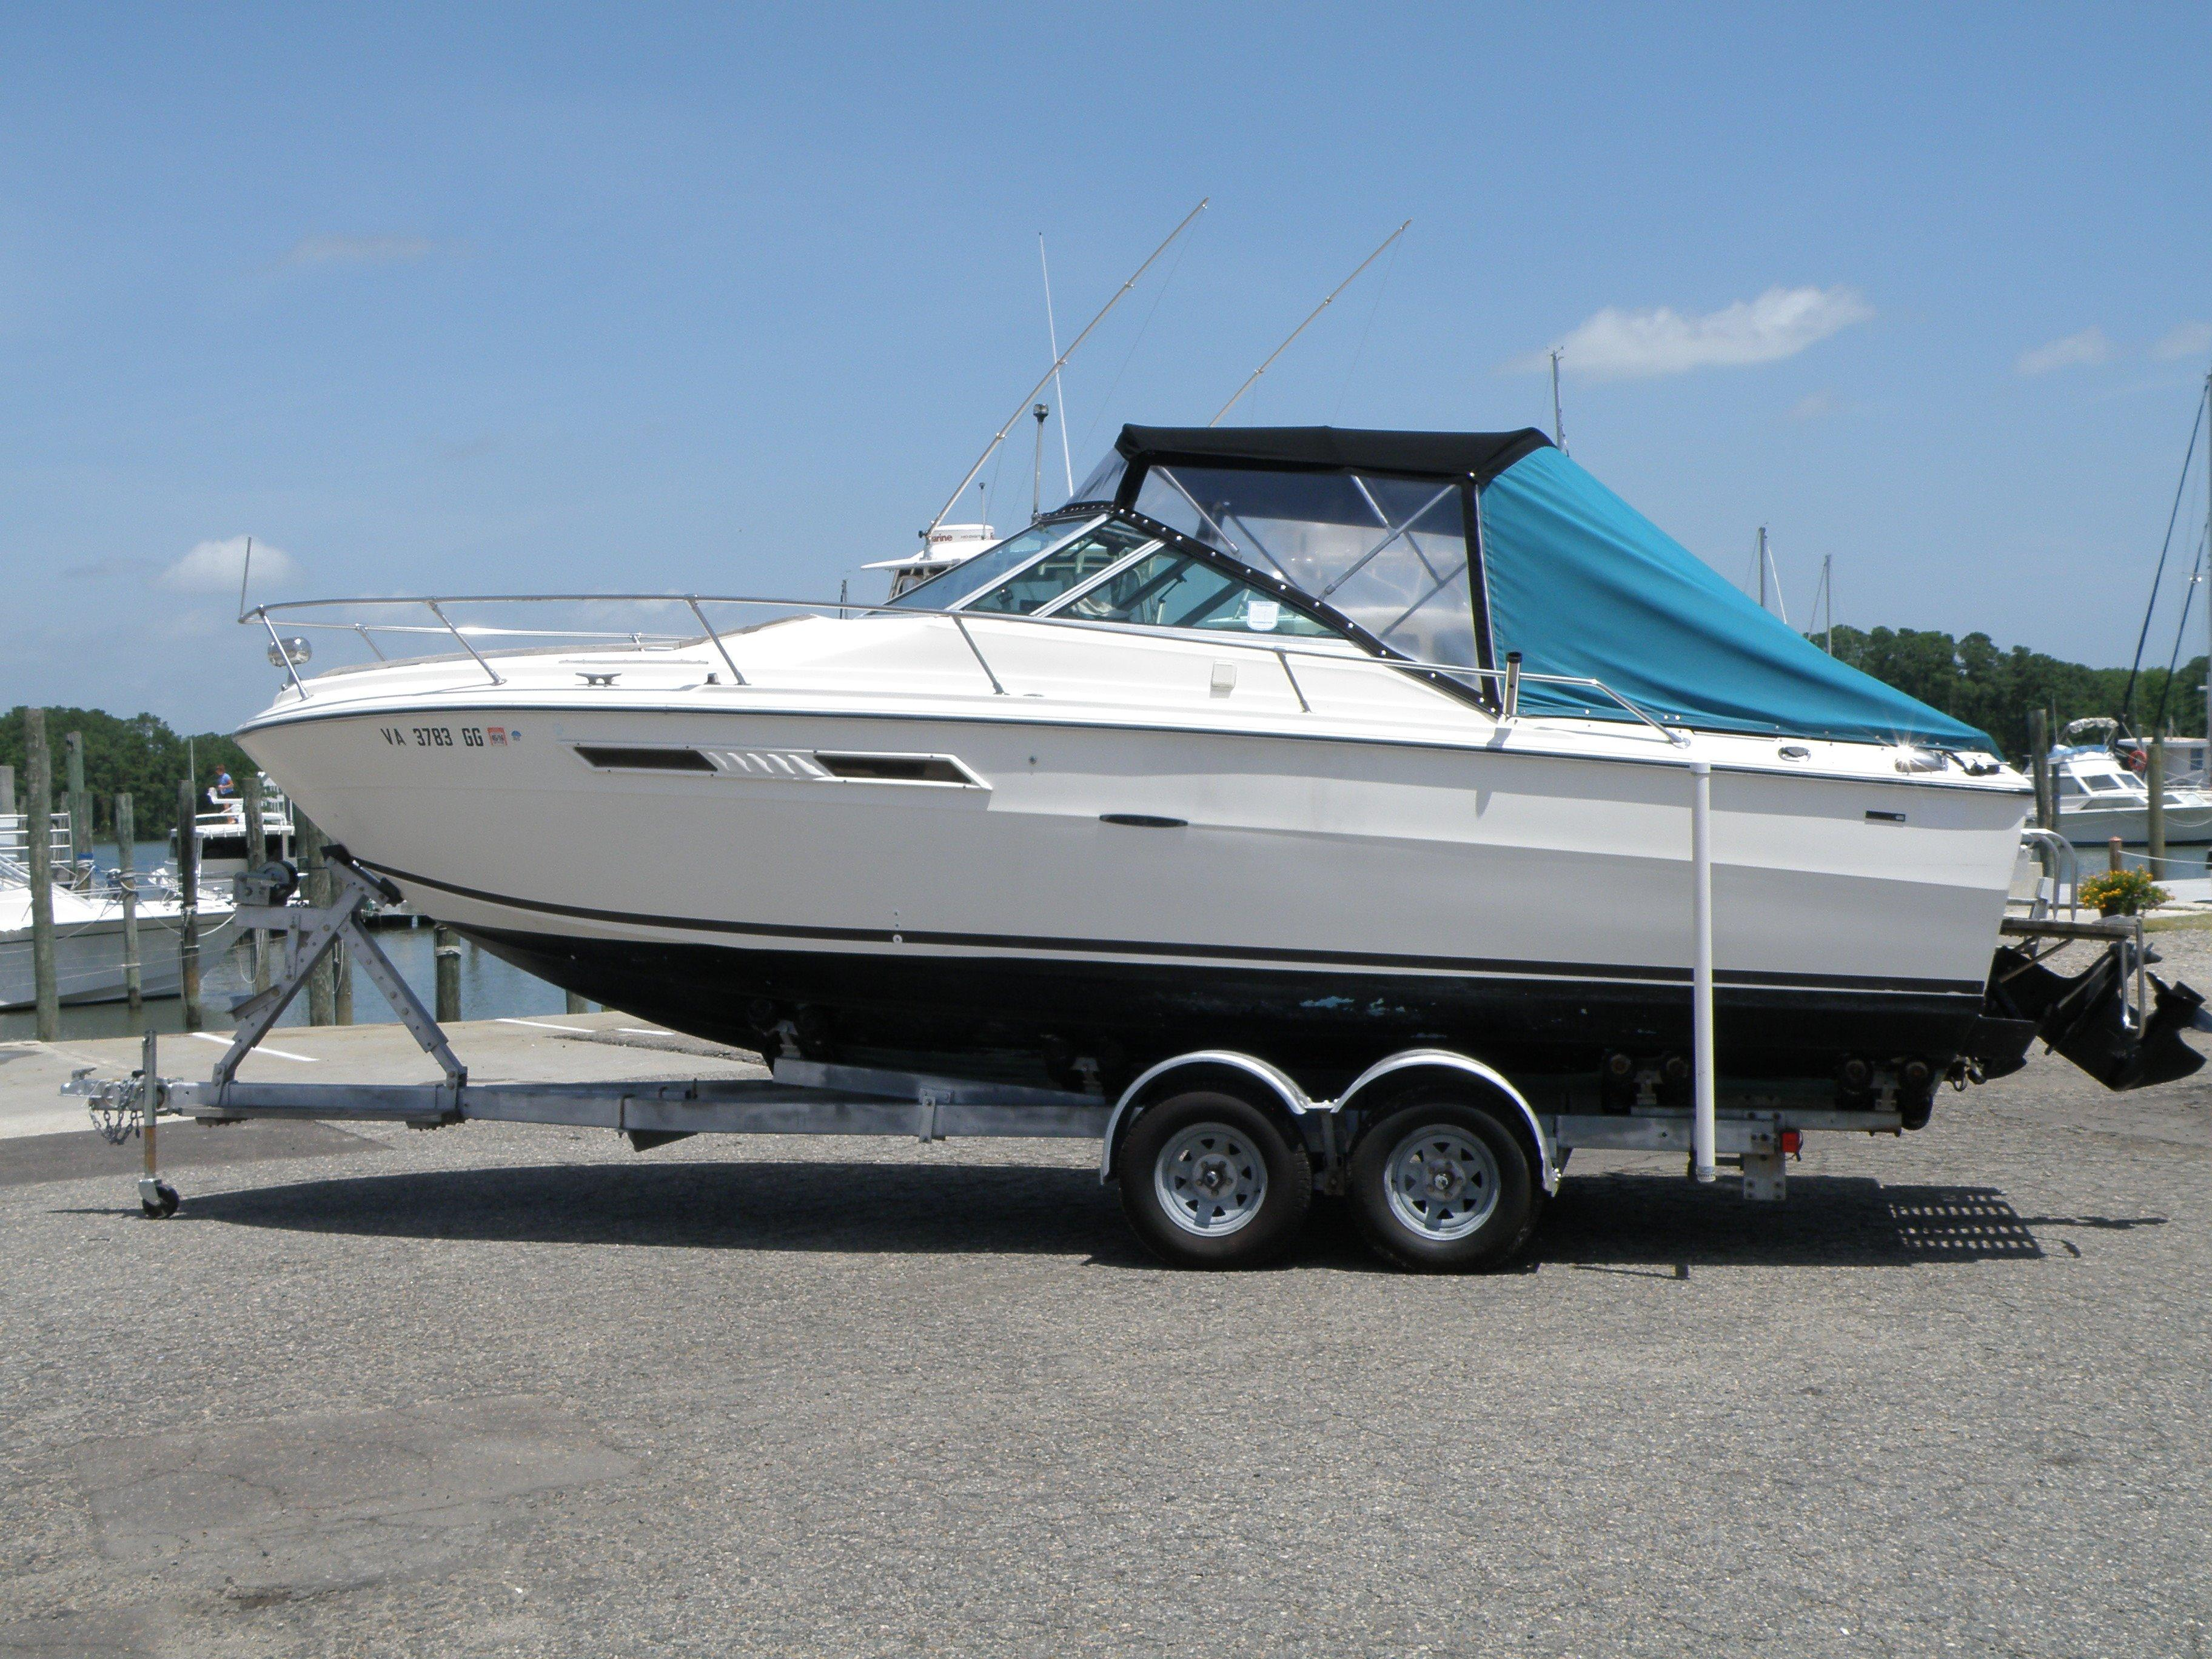 24 Foot Boats for Sale in VA | Boat listings